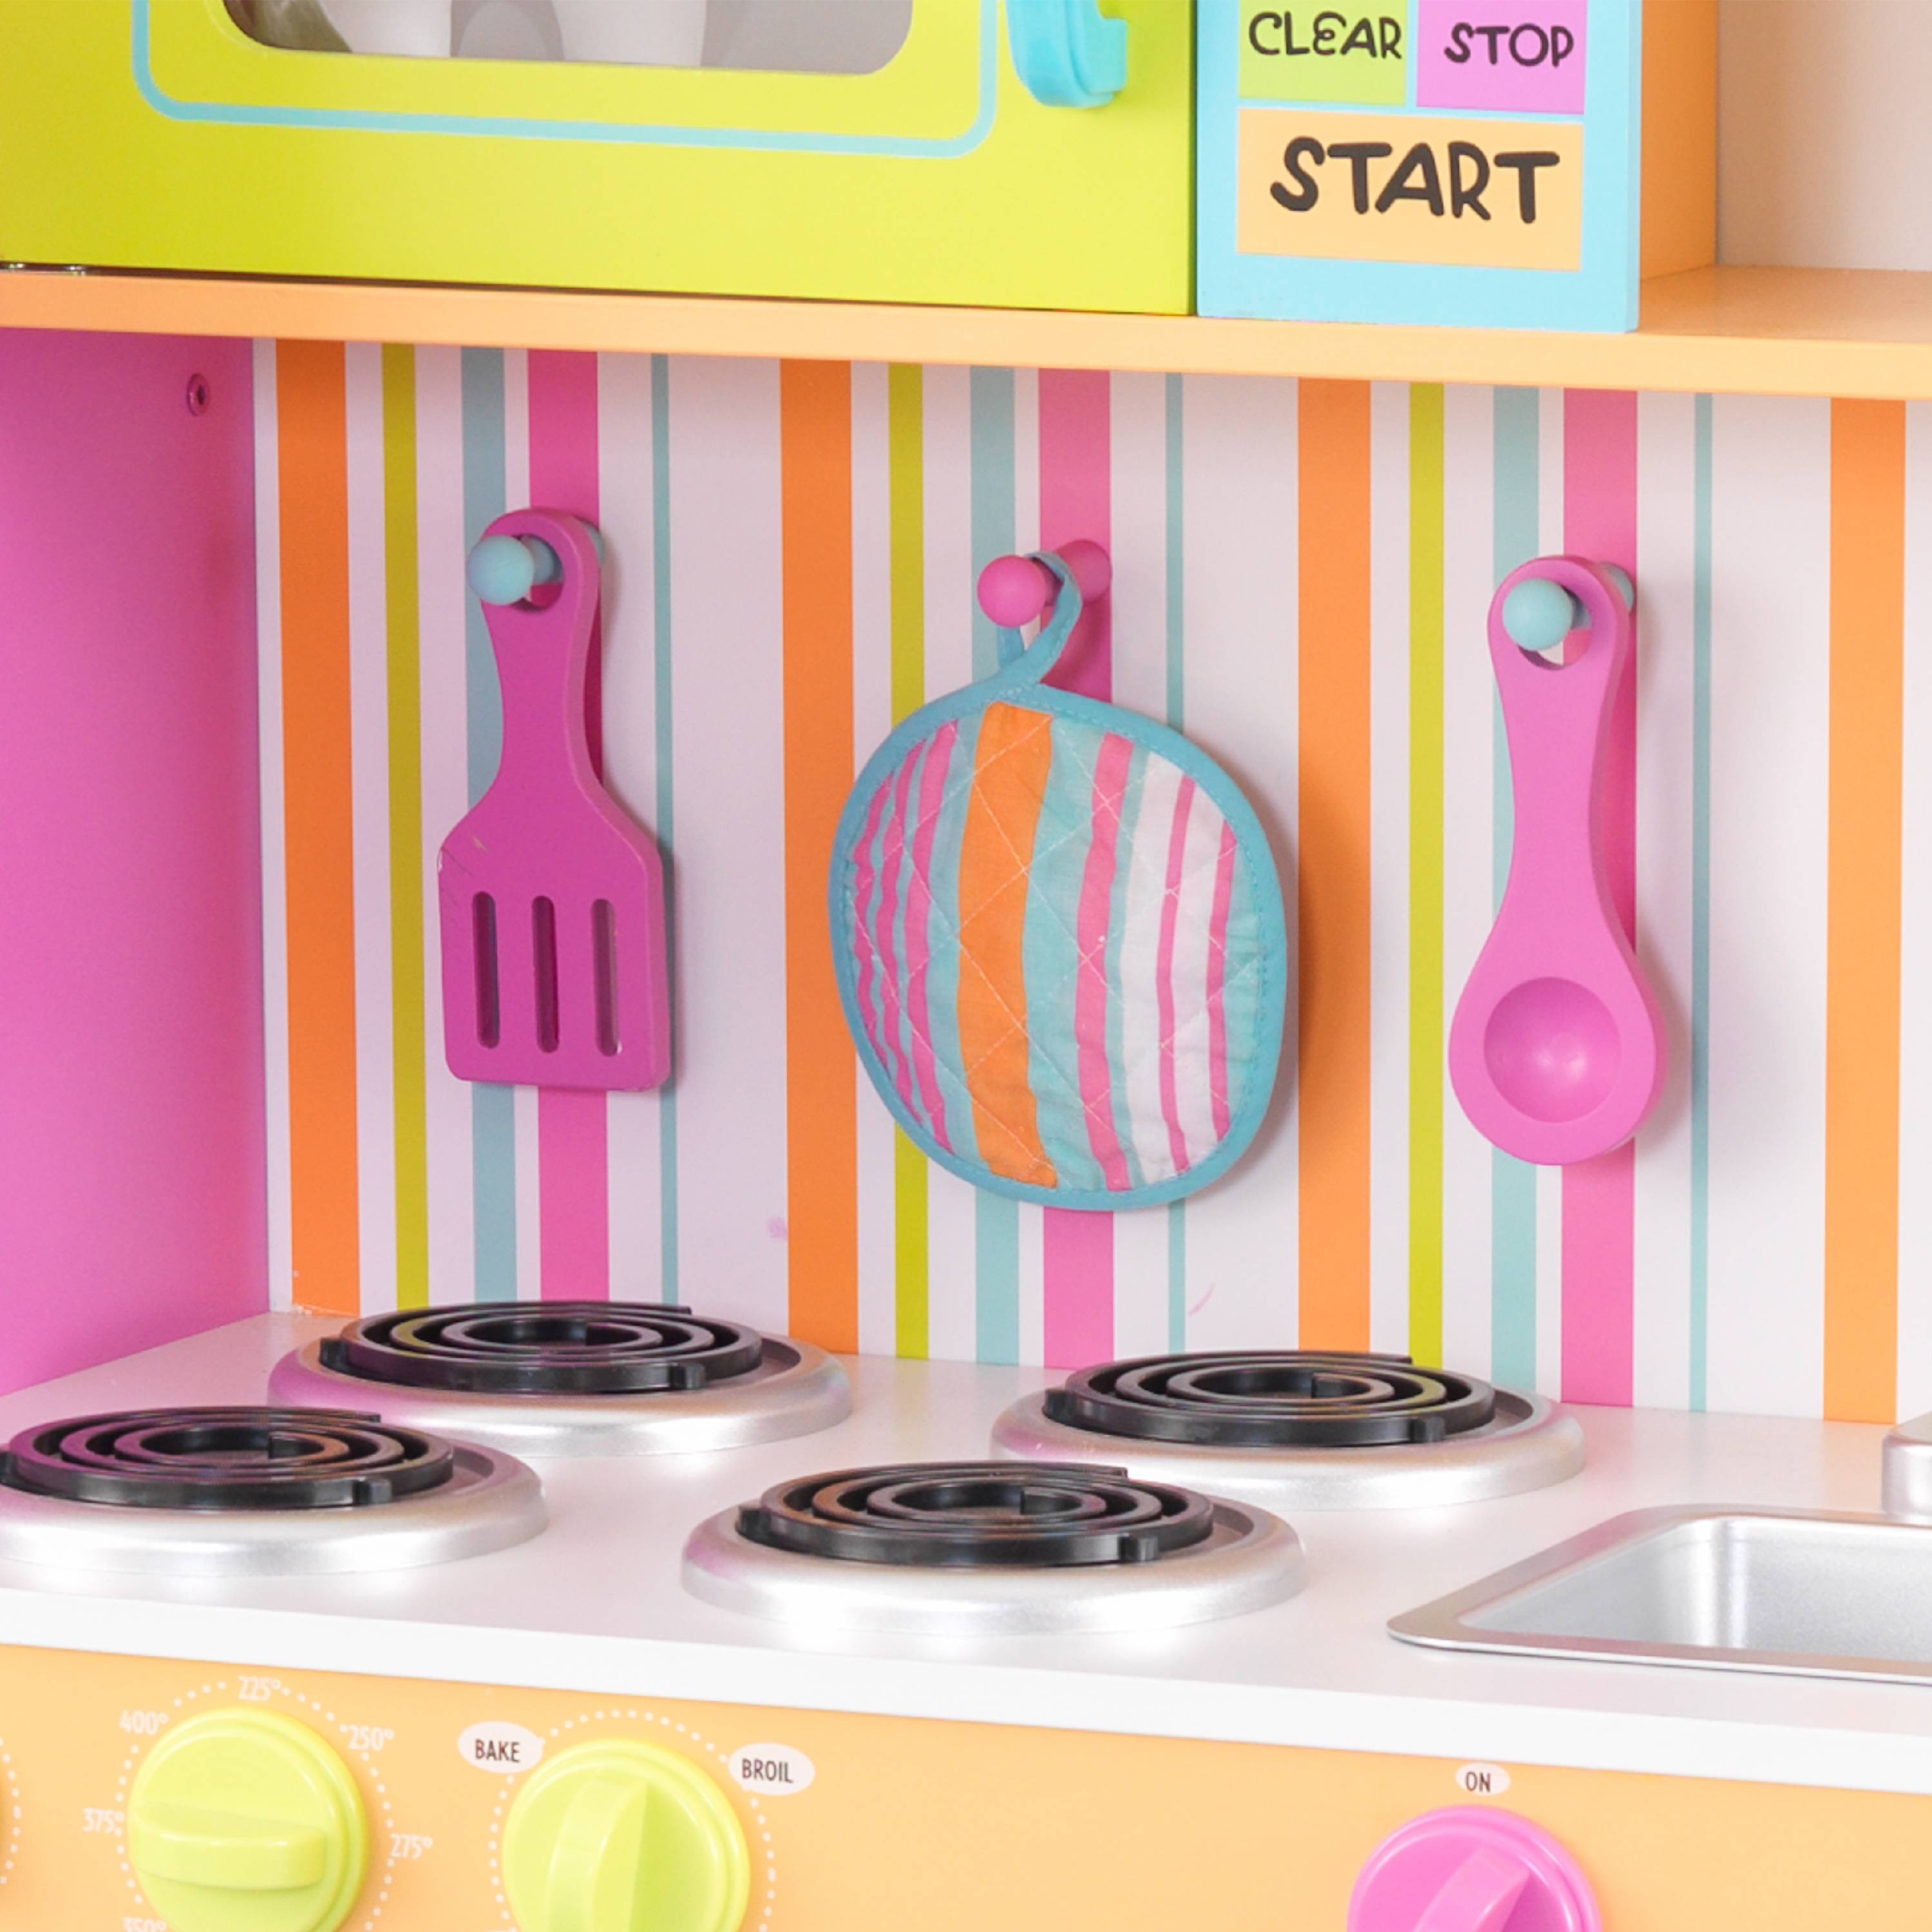 Exceptional KidKraft Deluxe Big And Bright Kitchen Image 6 Of 11